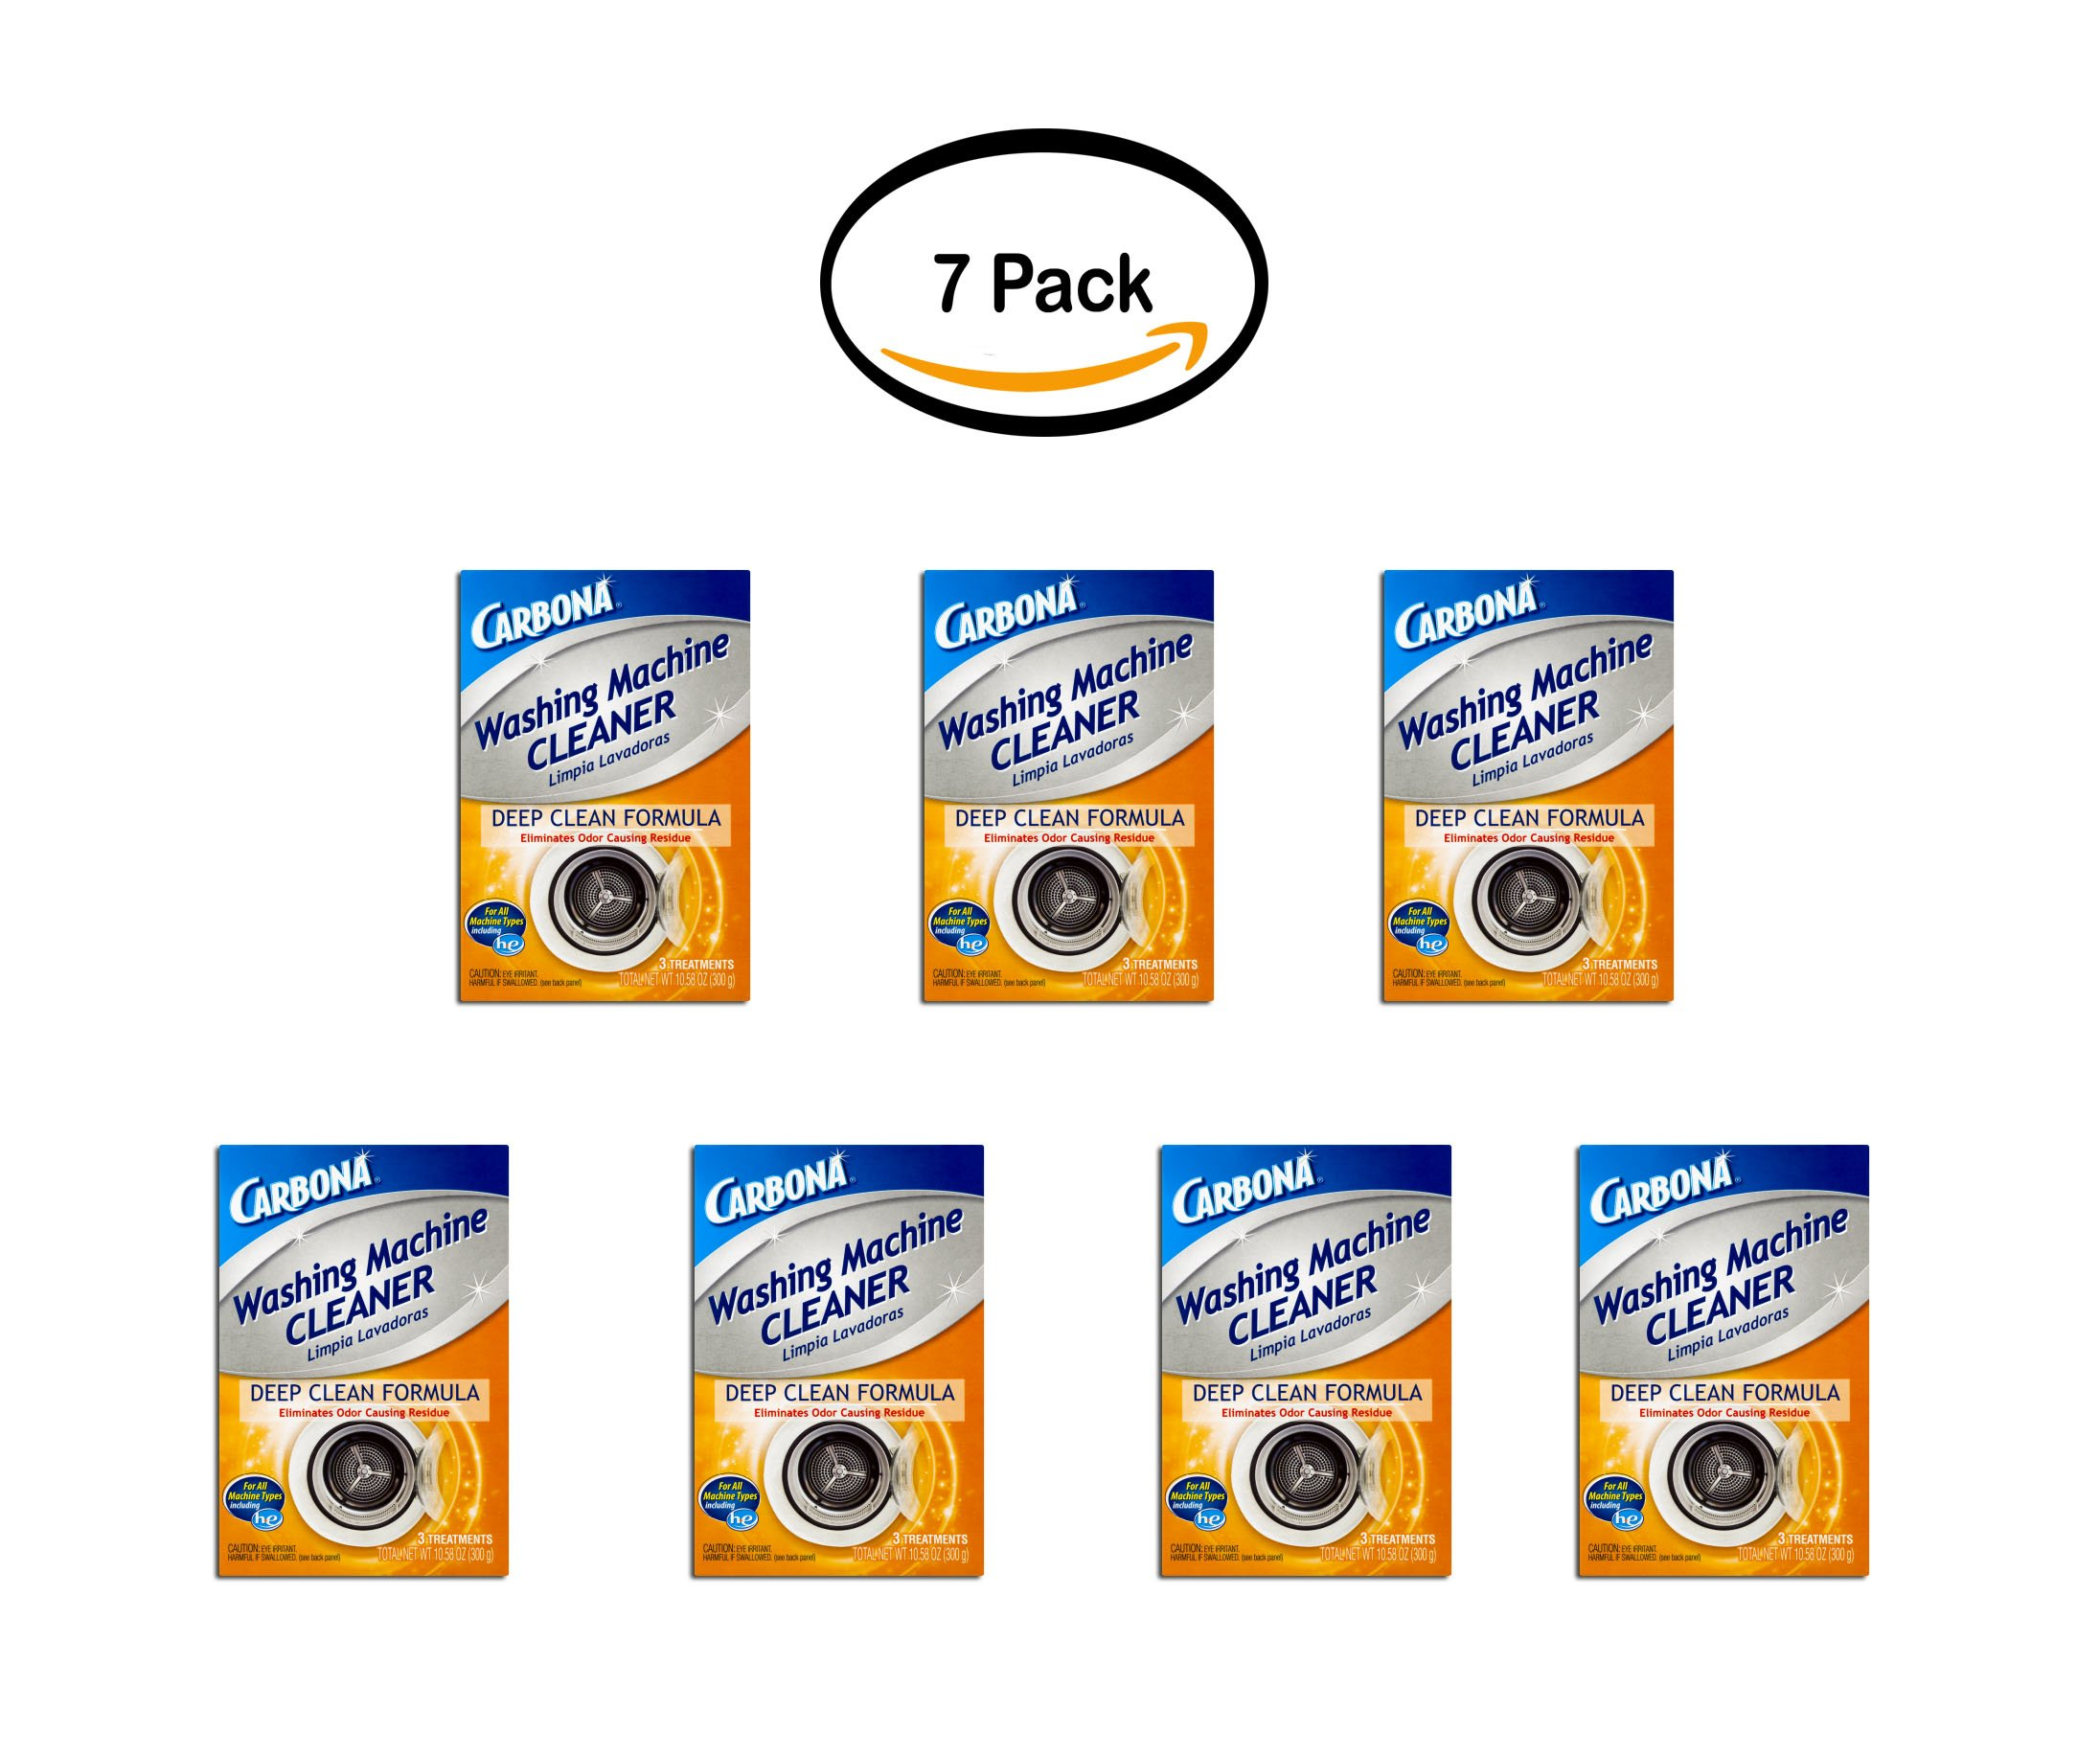 PACK OF 7 - Carbona Washing Machine Cleaner, 3 Count